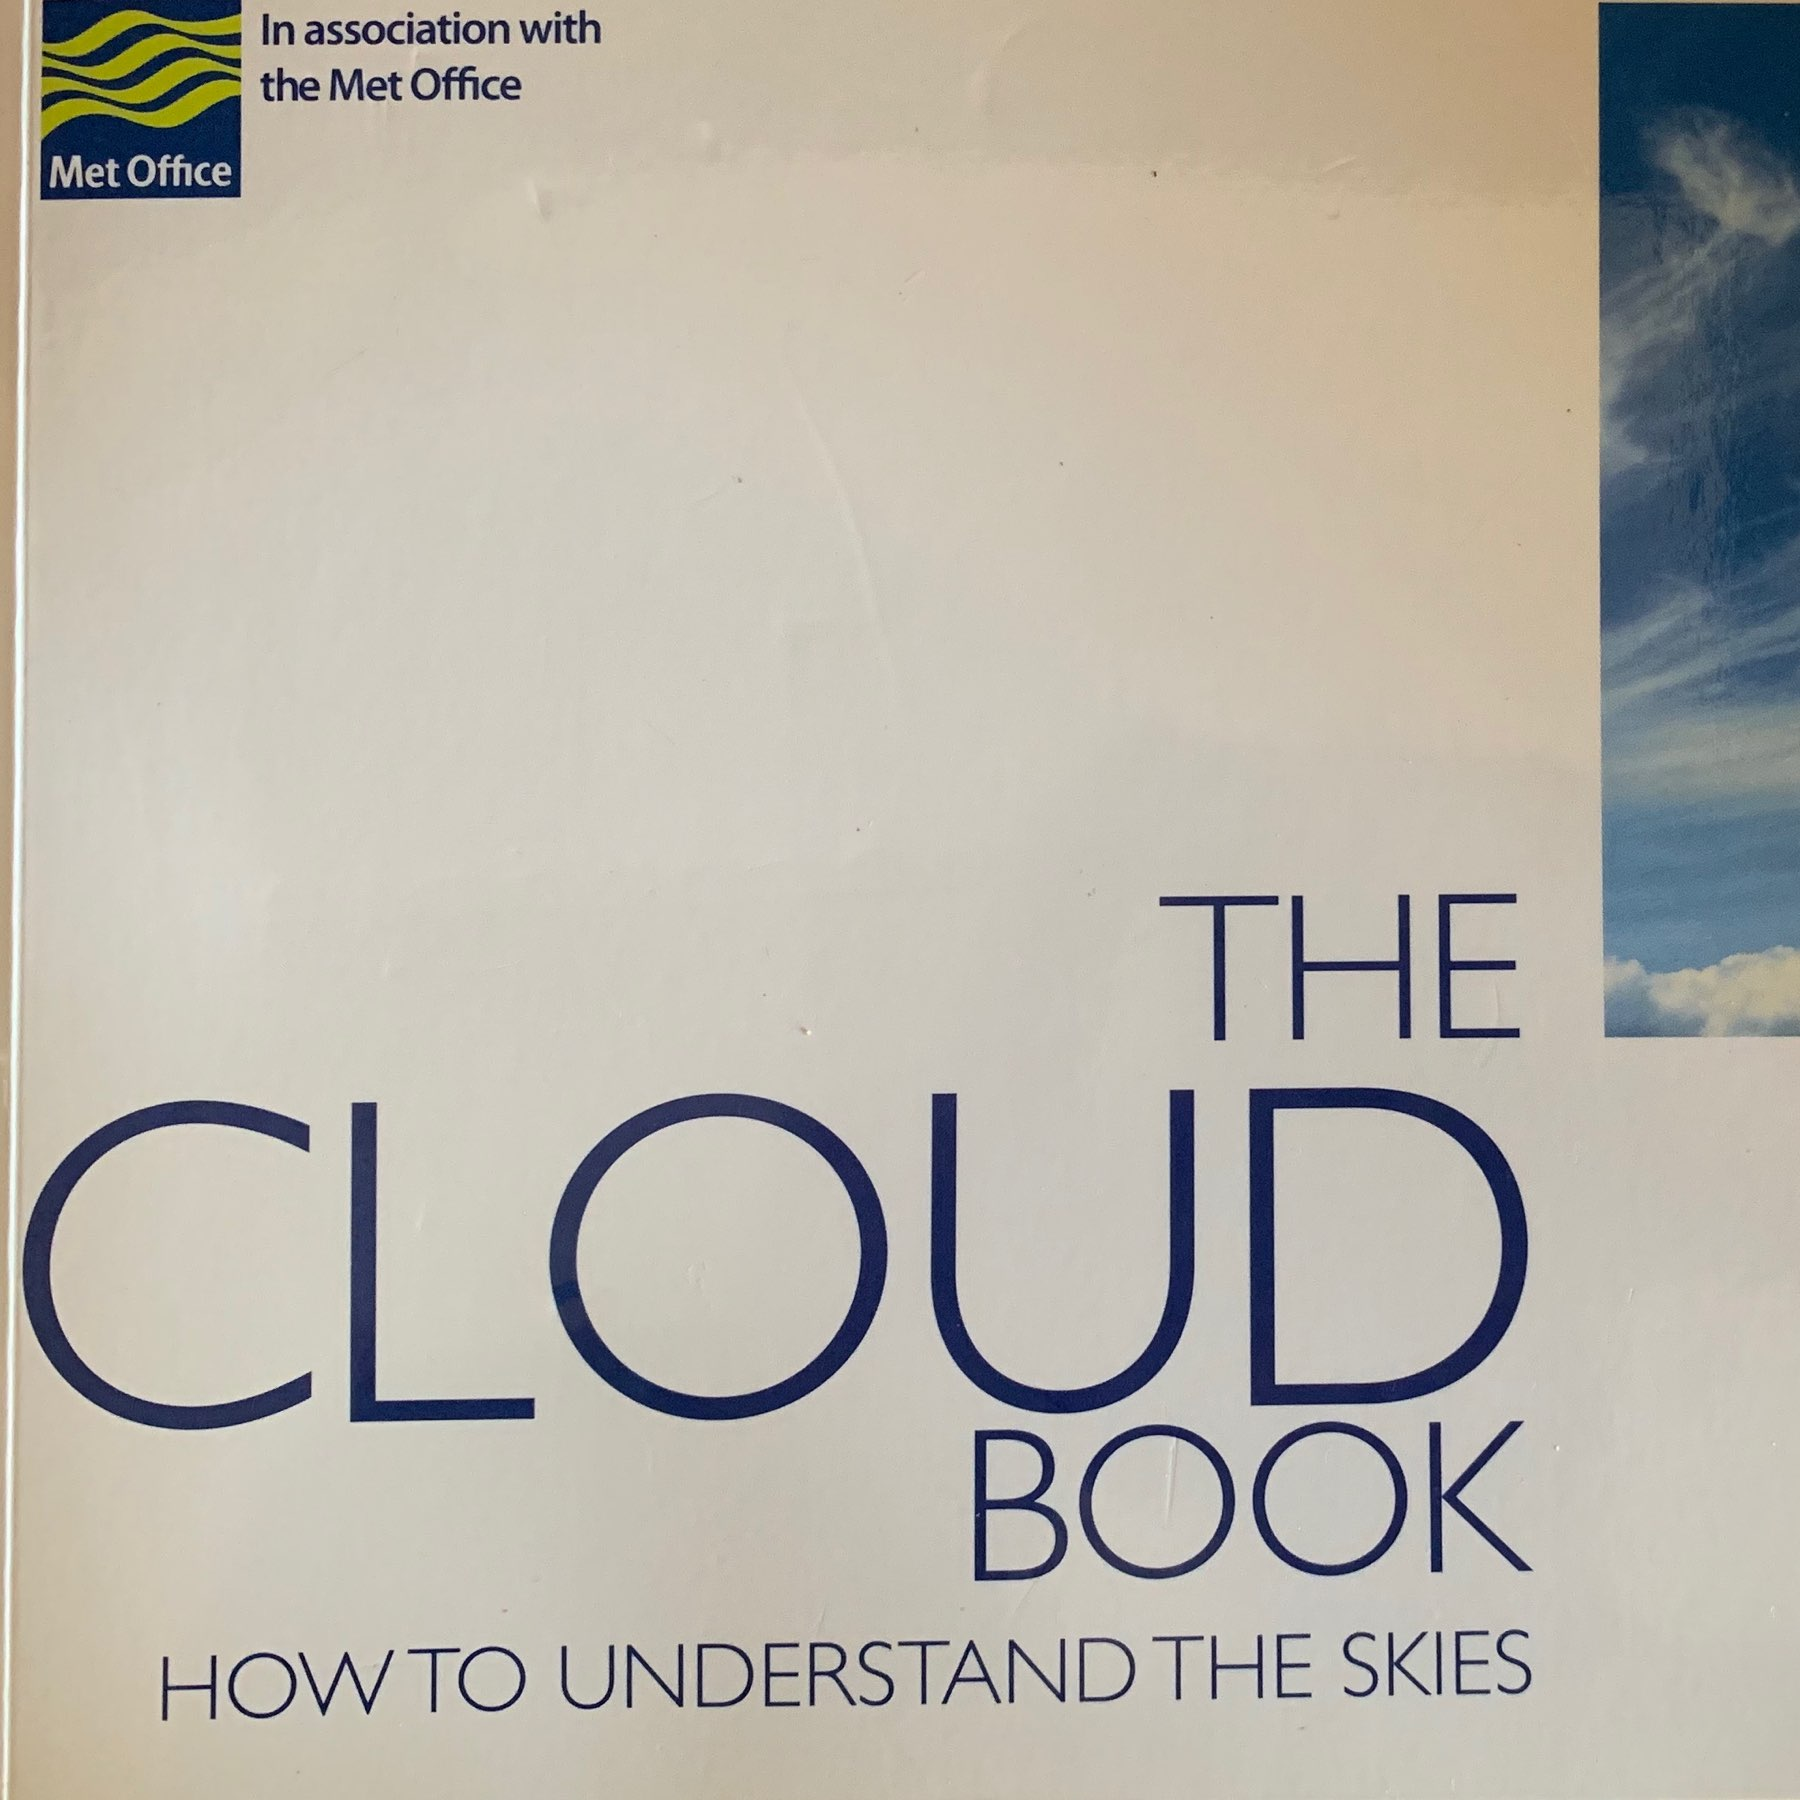 cover of book, the cloud book